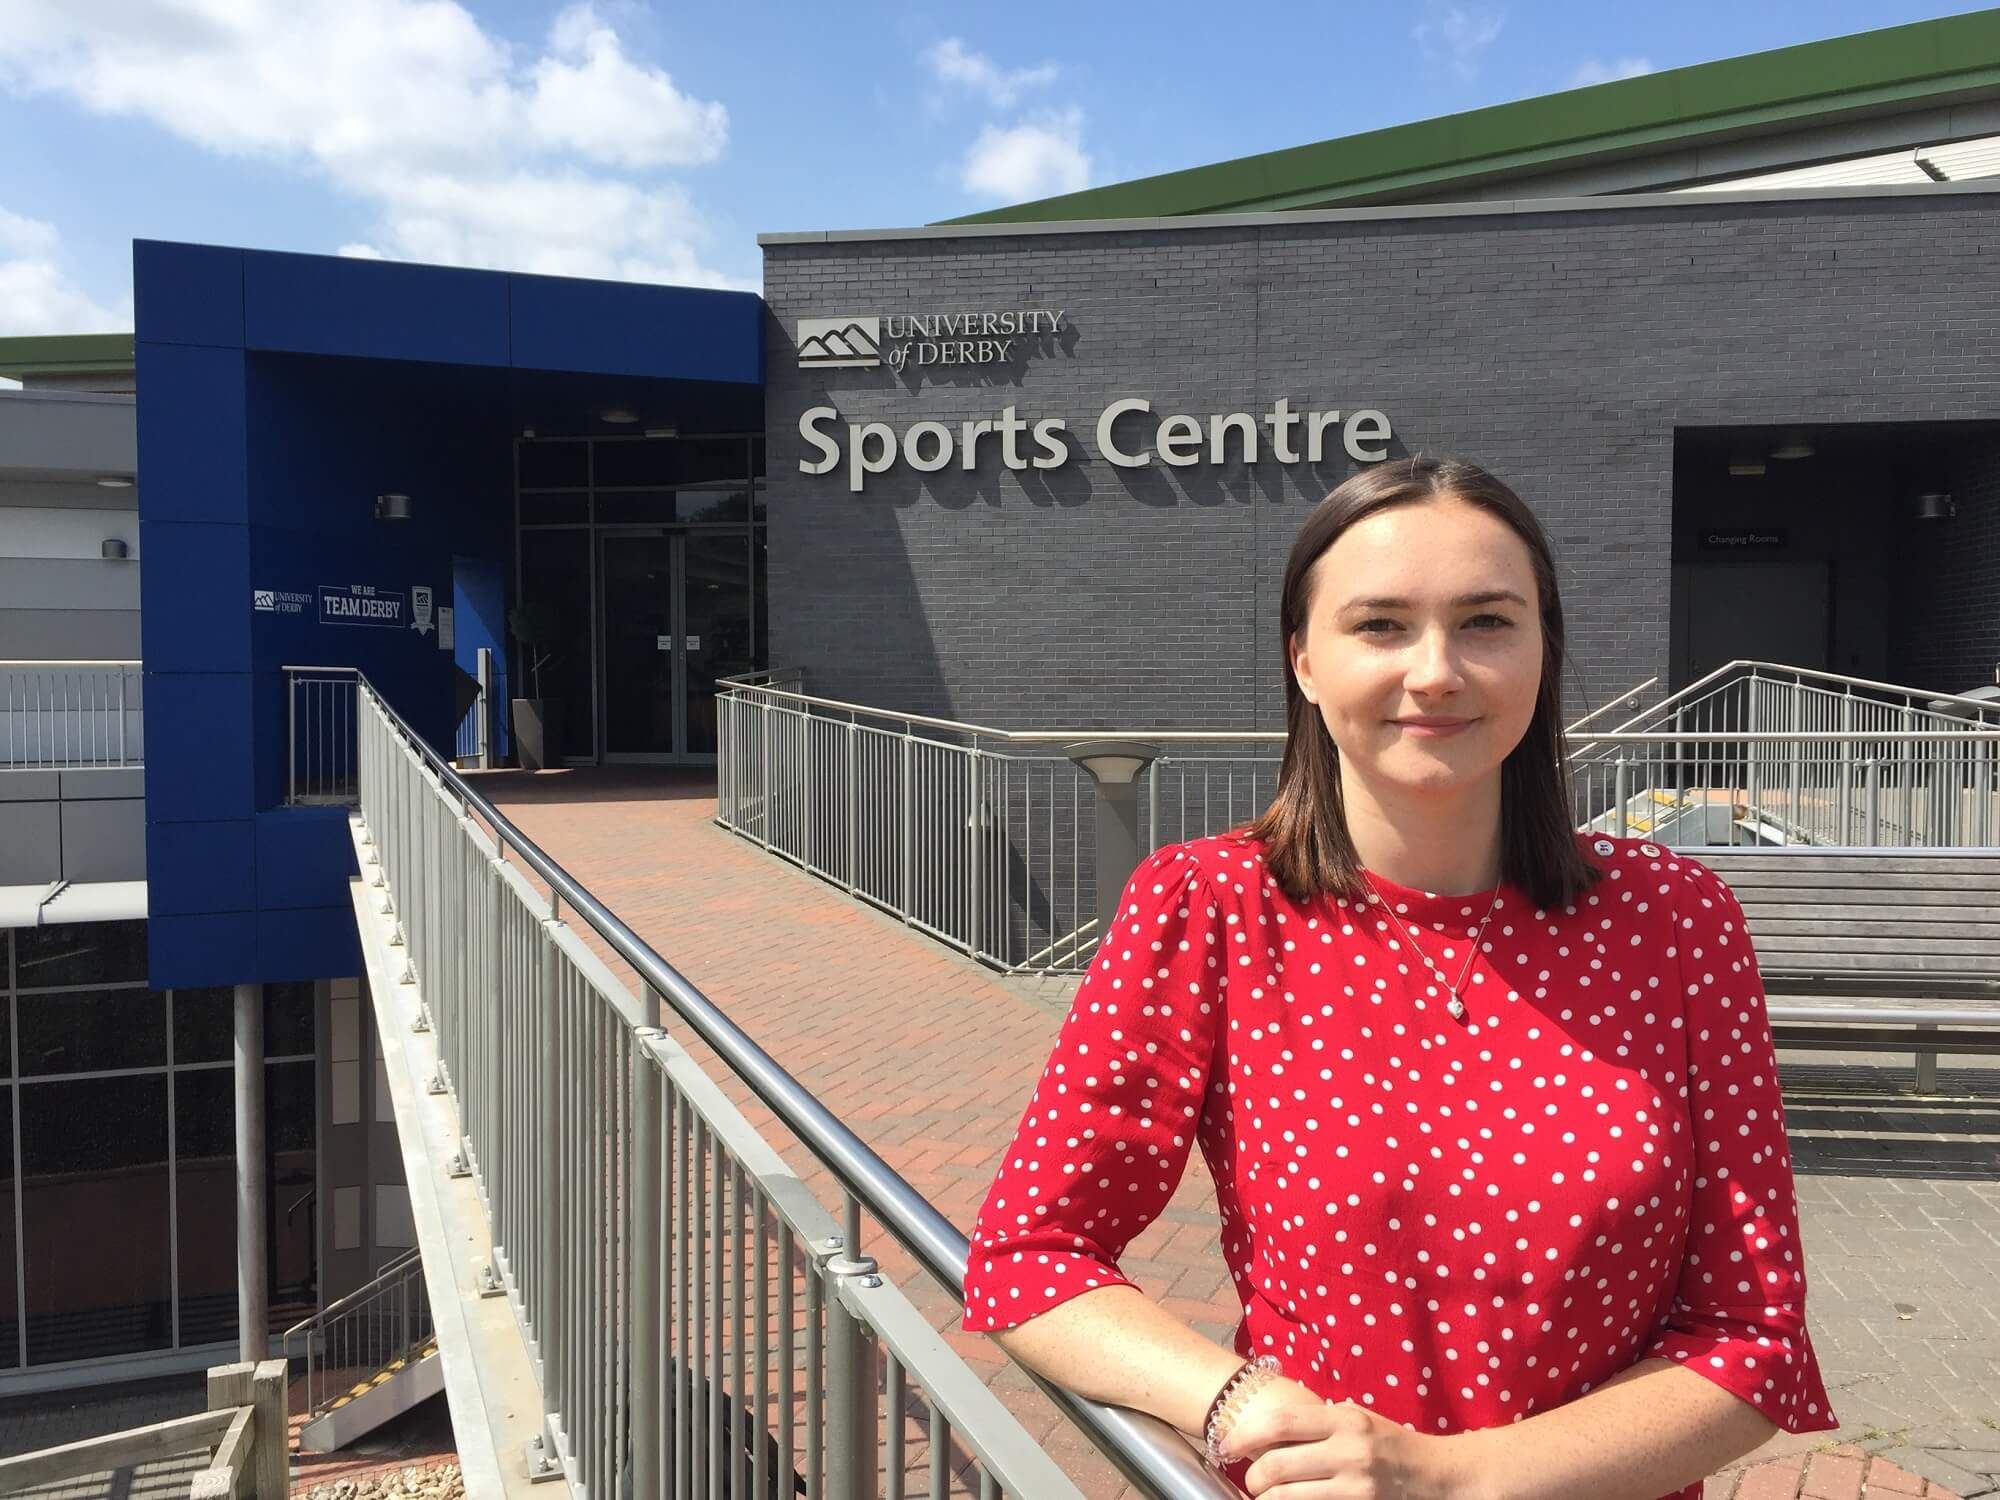 Student Holly Percival standing outside the University of Derby sports centre